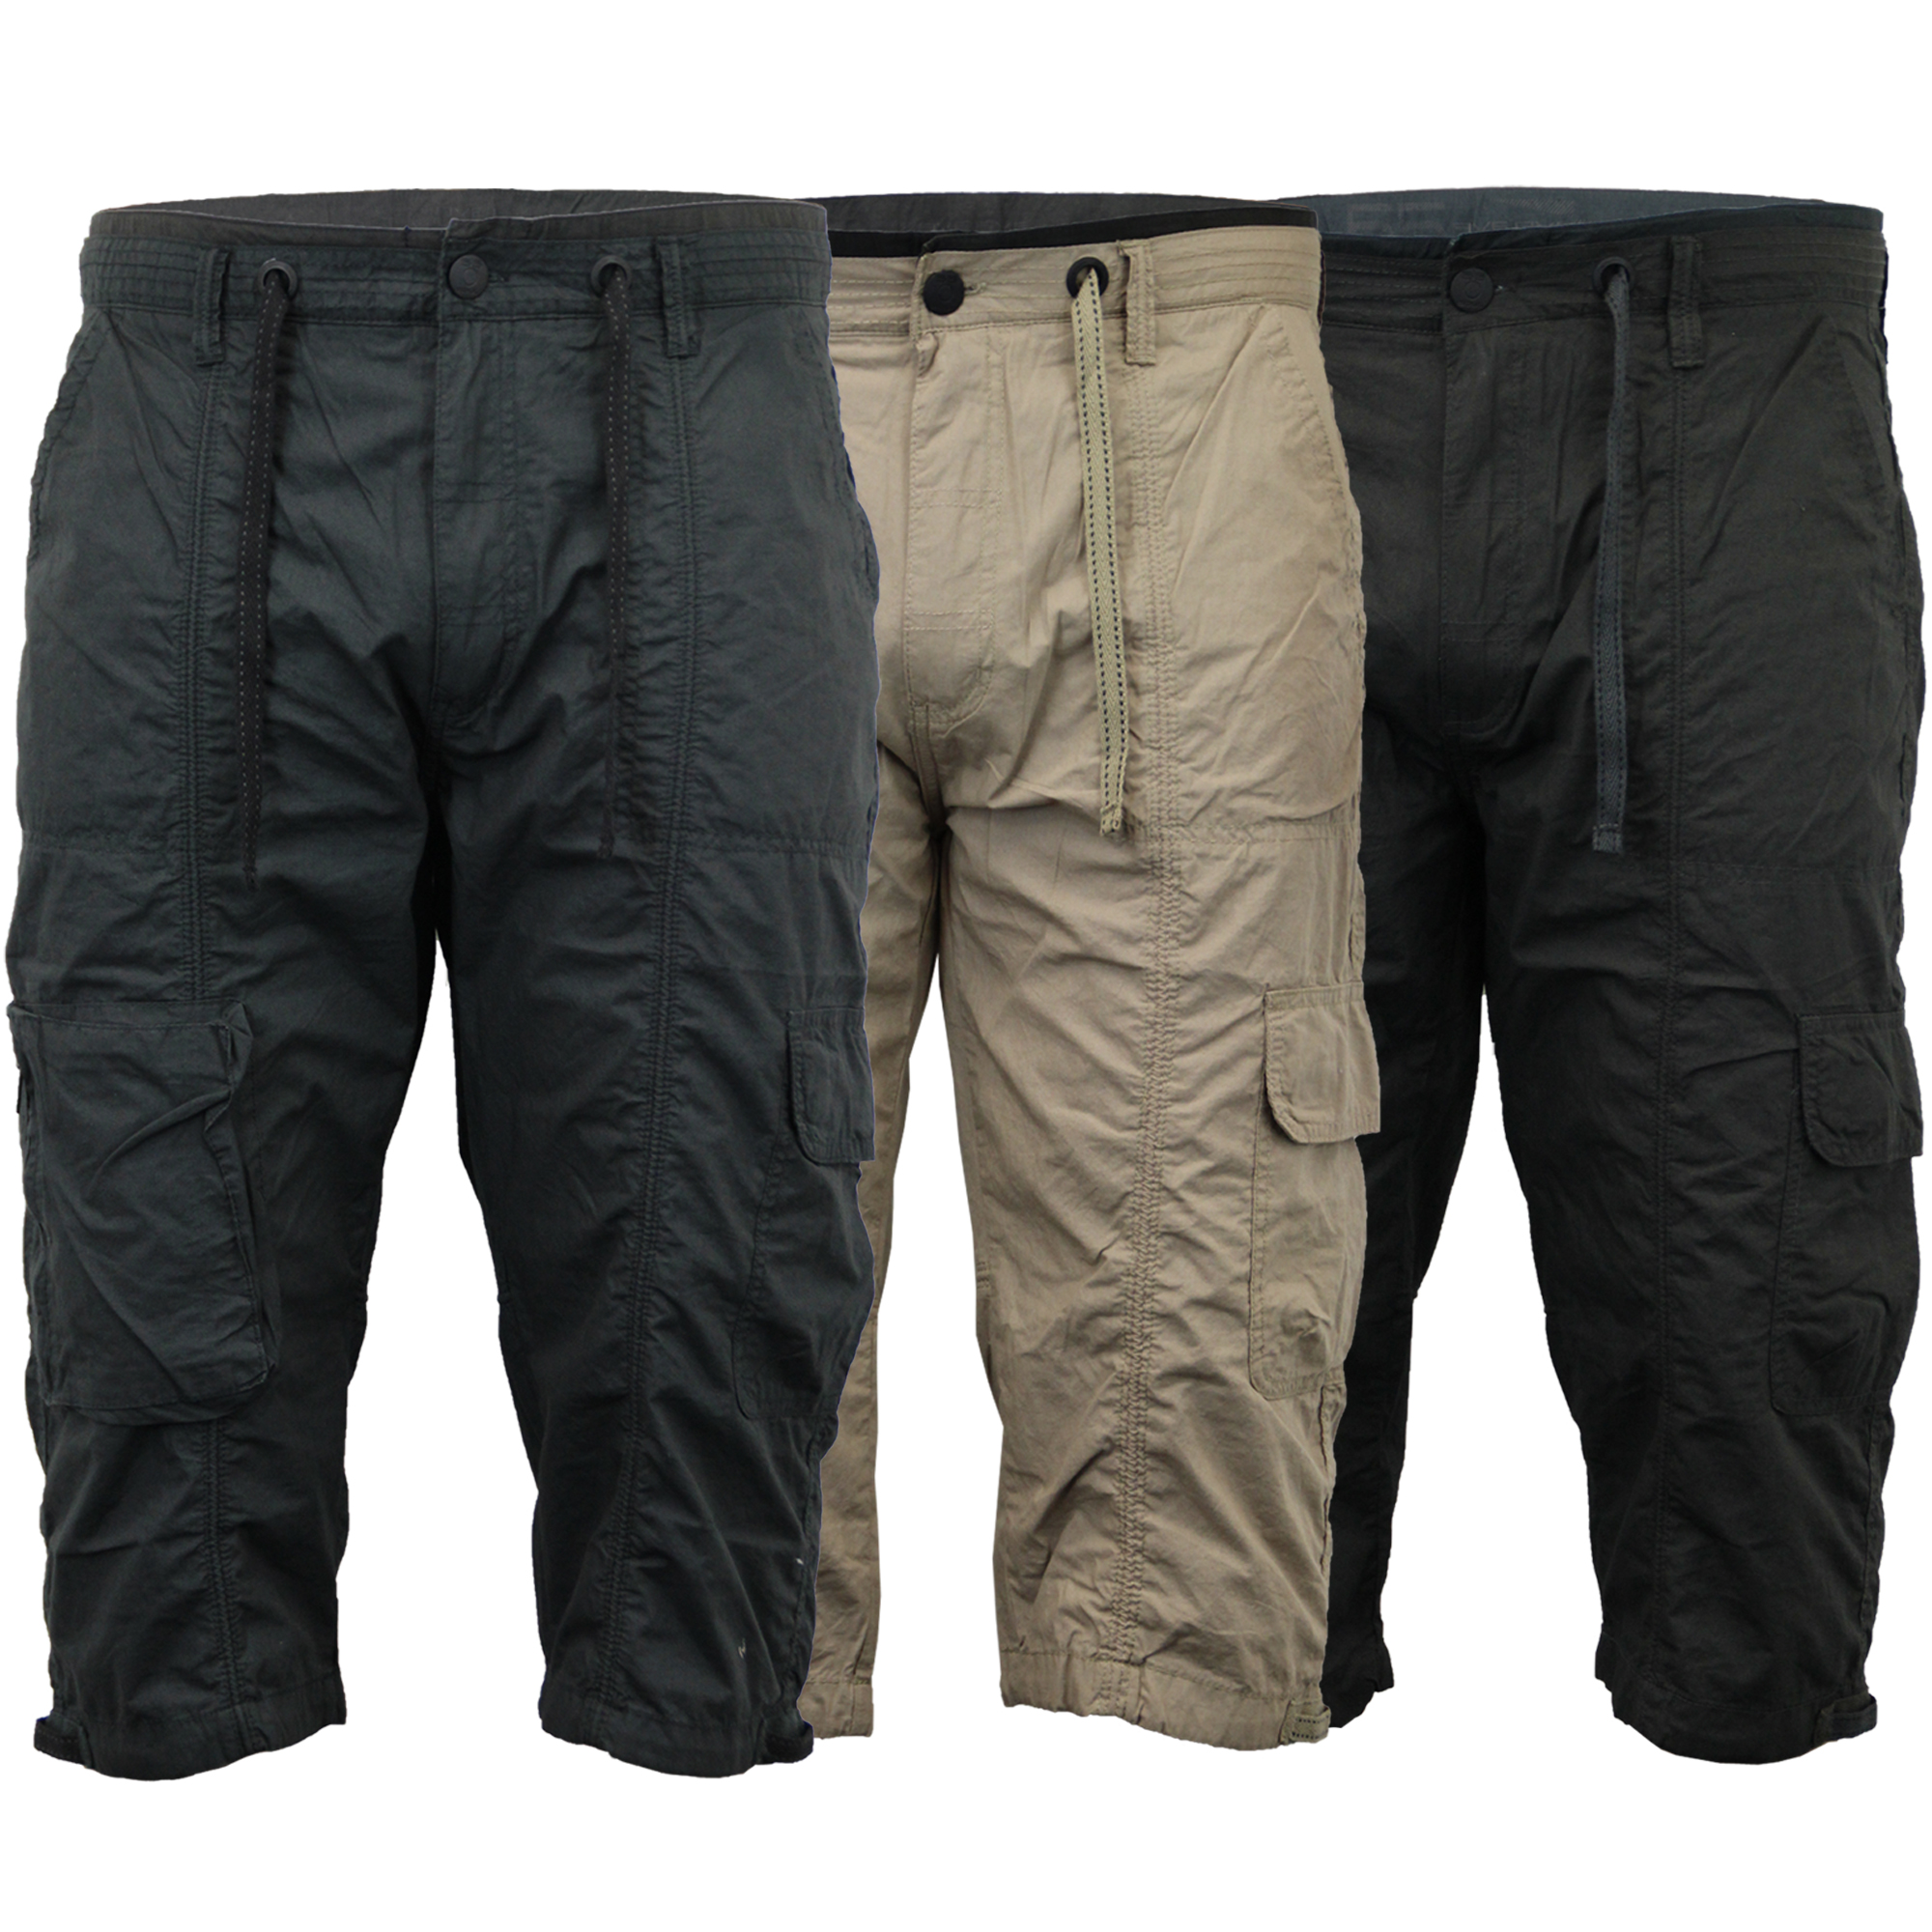 Mens Shorts 55 Soul Combat Cargo Bottoms Half Pants 3 4 Quarter ...